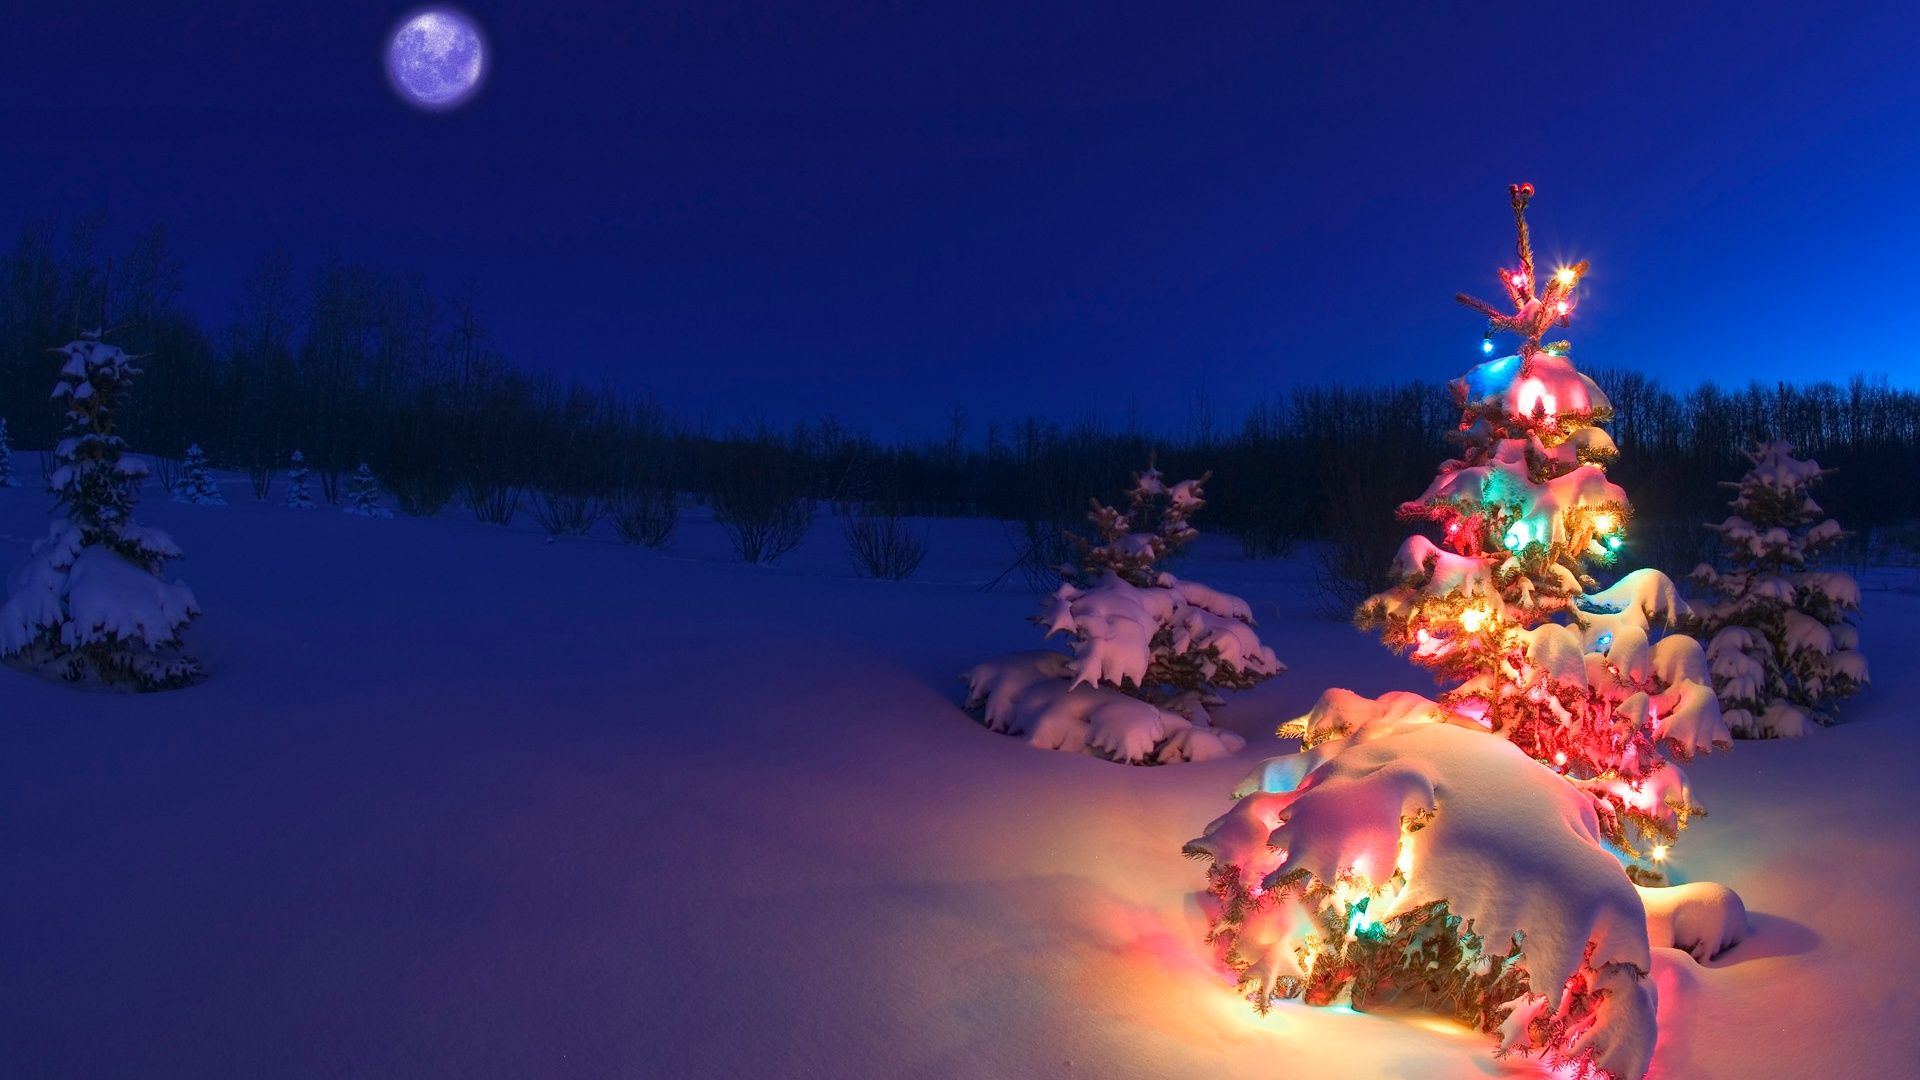 Free Download Merry Christmas Hd Wallpapers Image Greetings